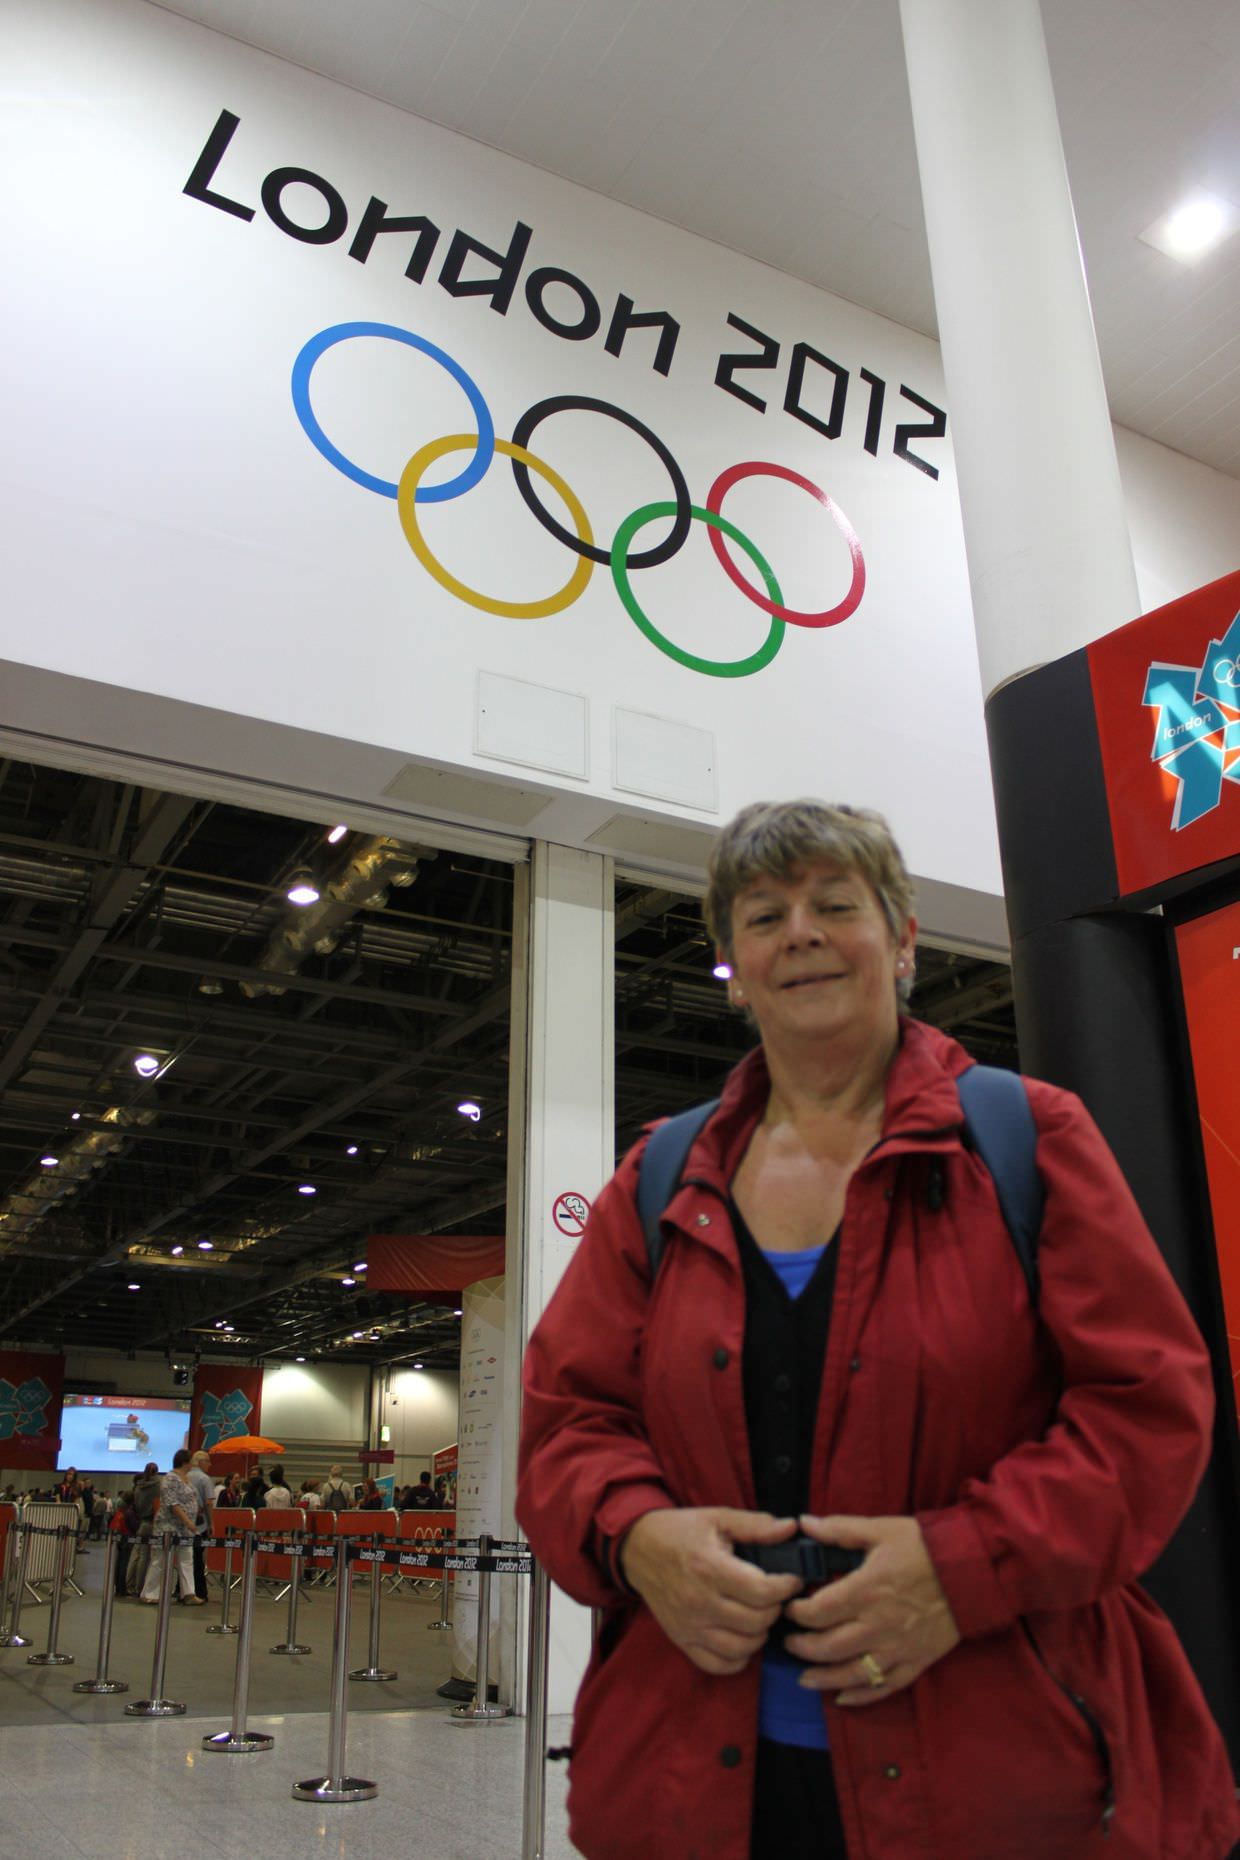 Mum at the olympics, ready to see some table tennis